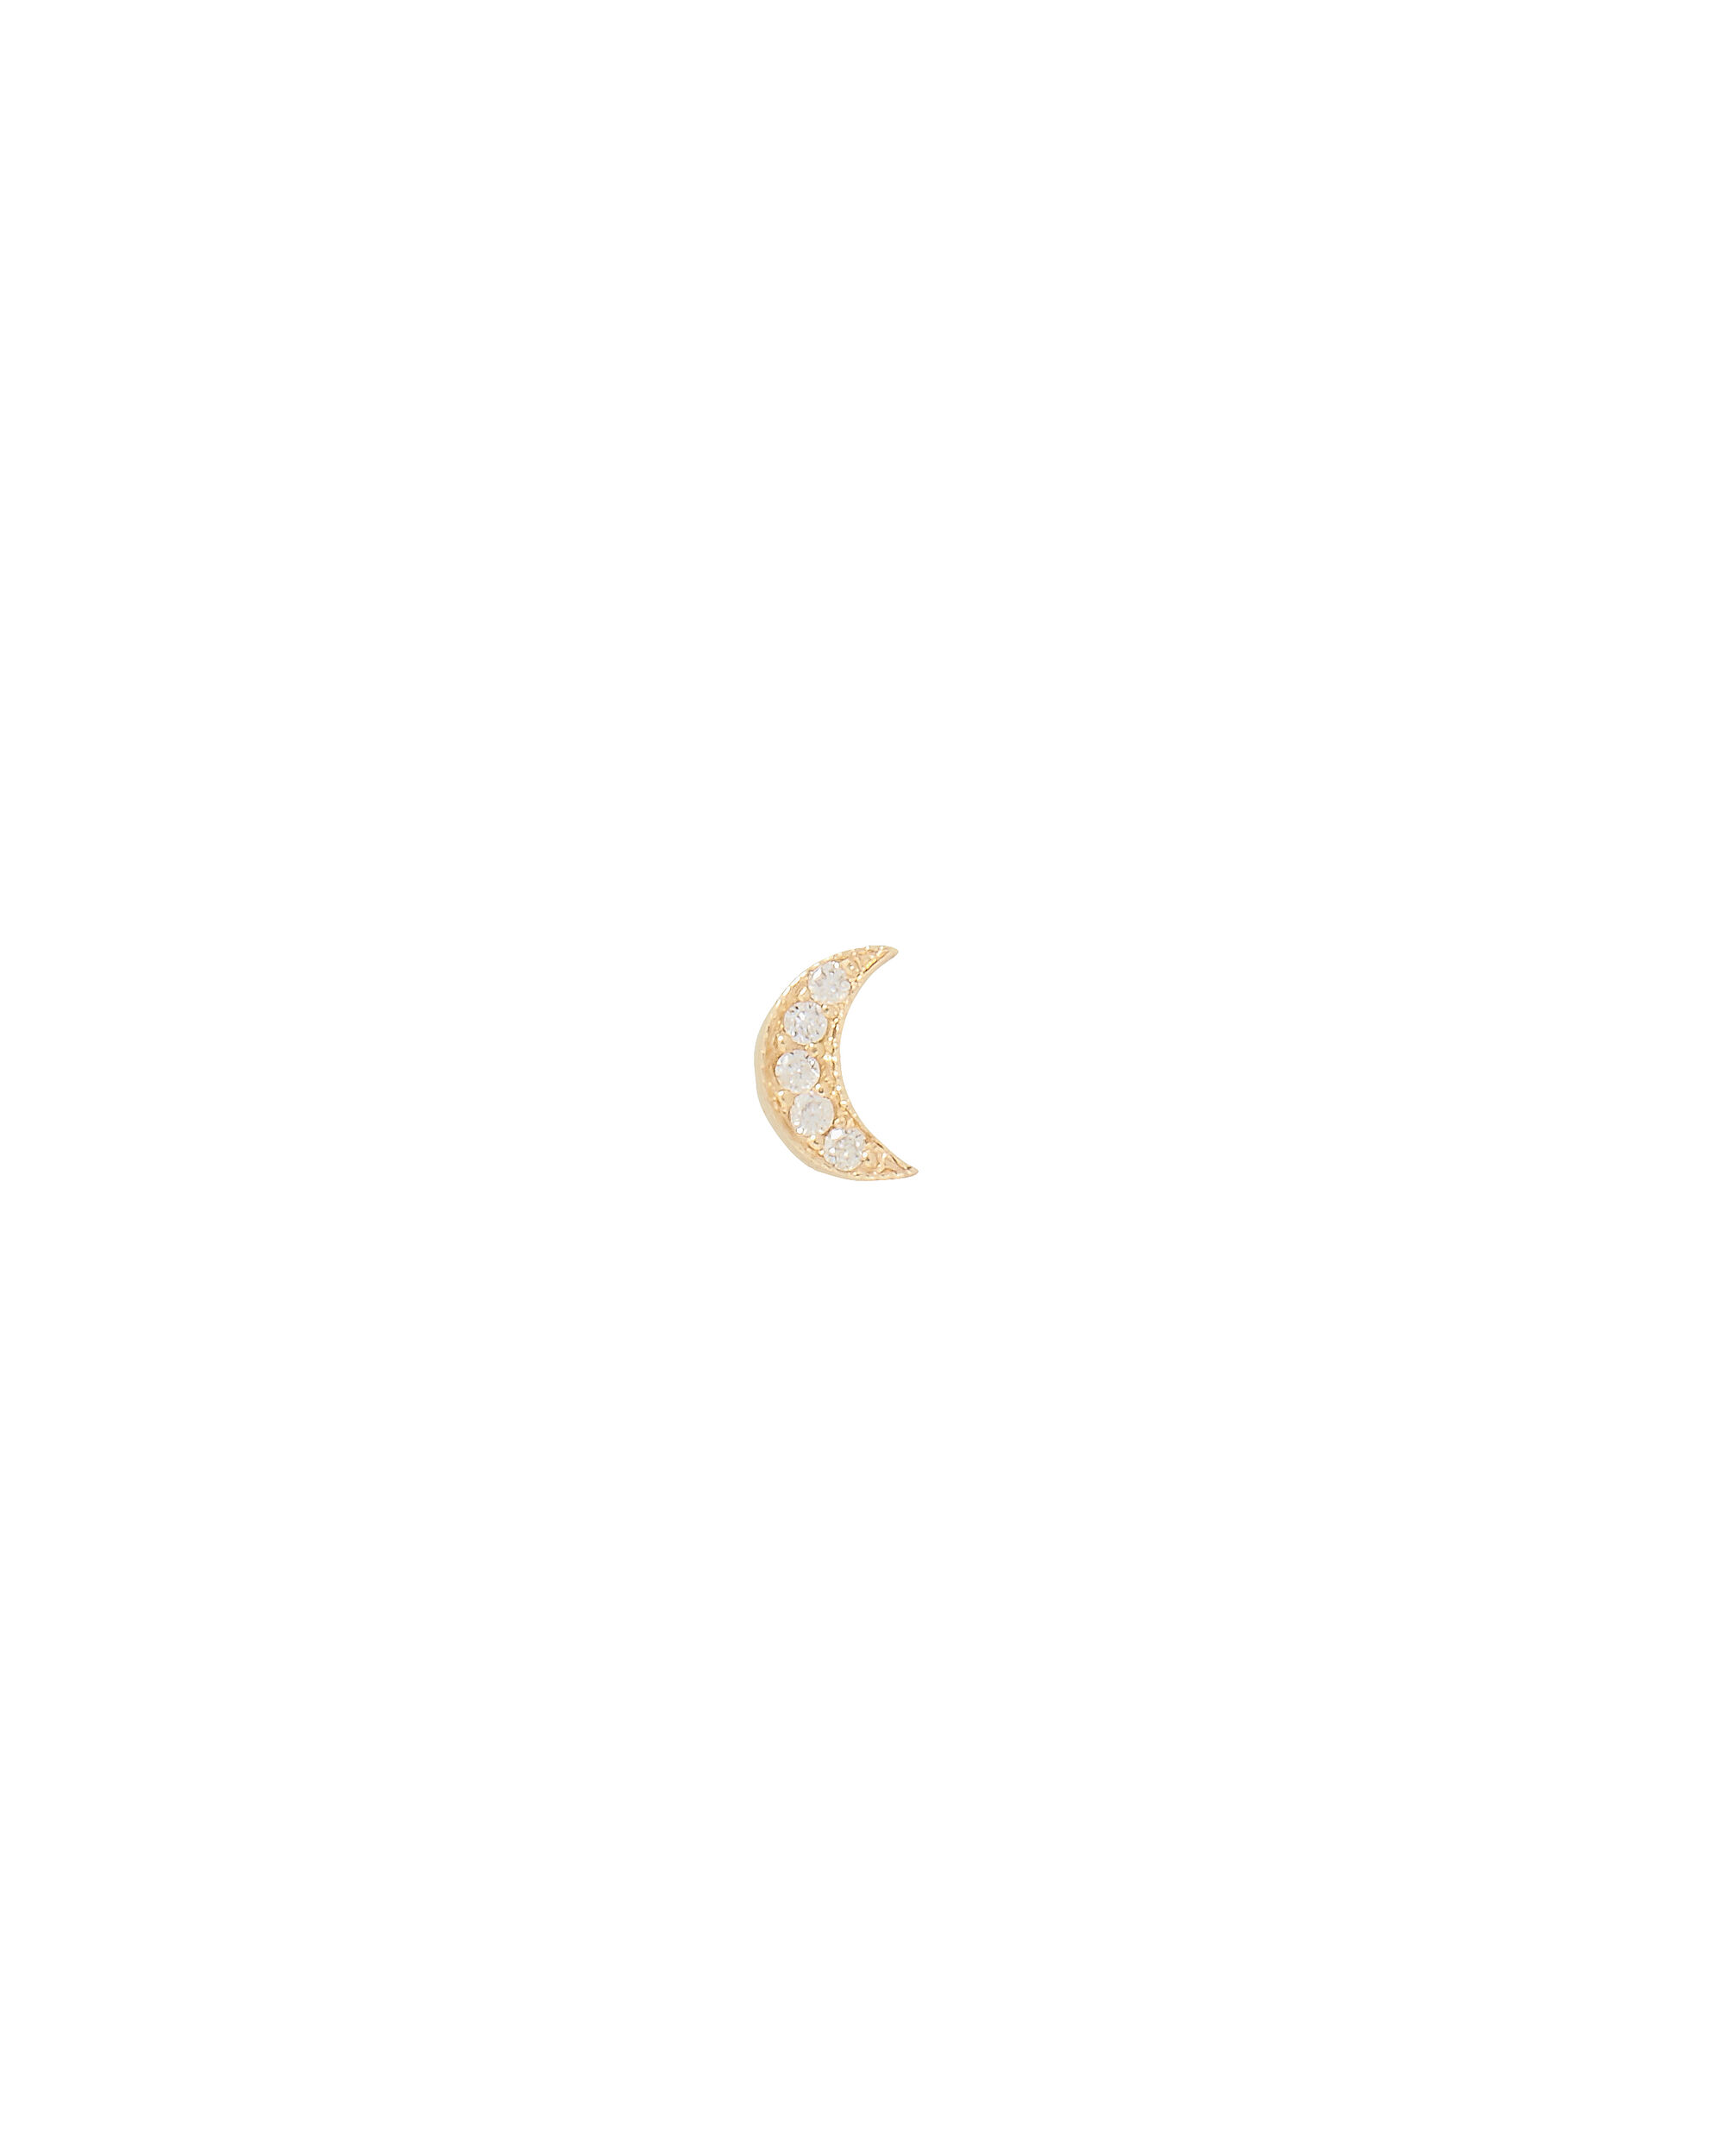 Itty Bitty Diamond Moon Single Earring, GOLD, hi-res